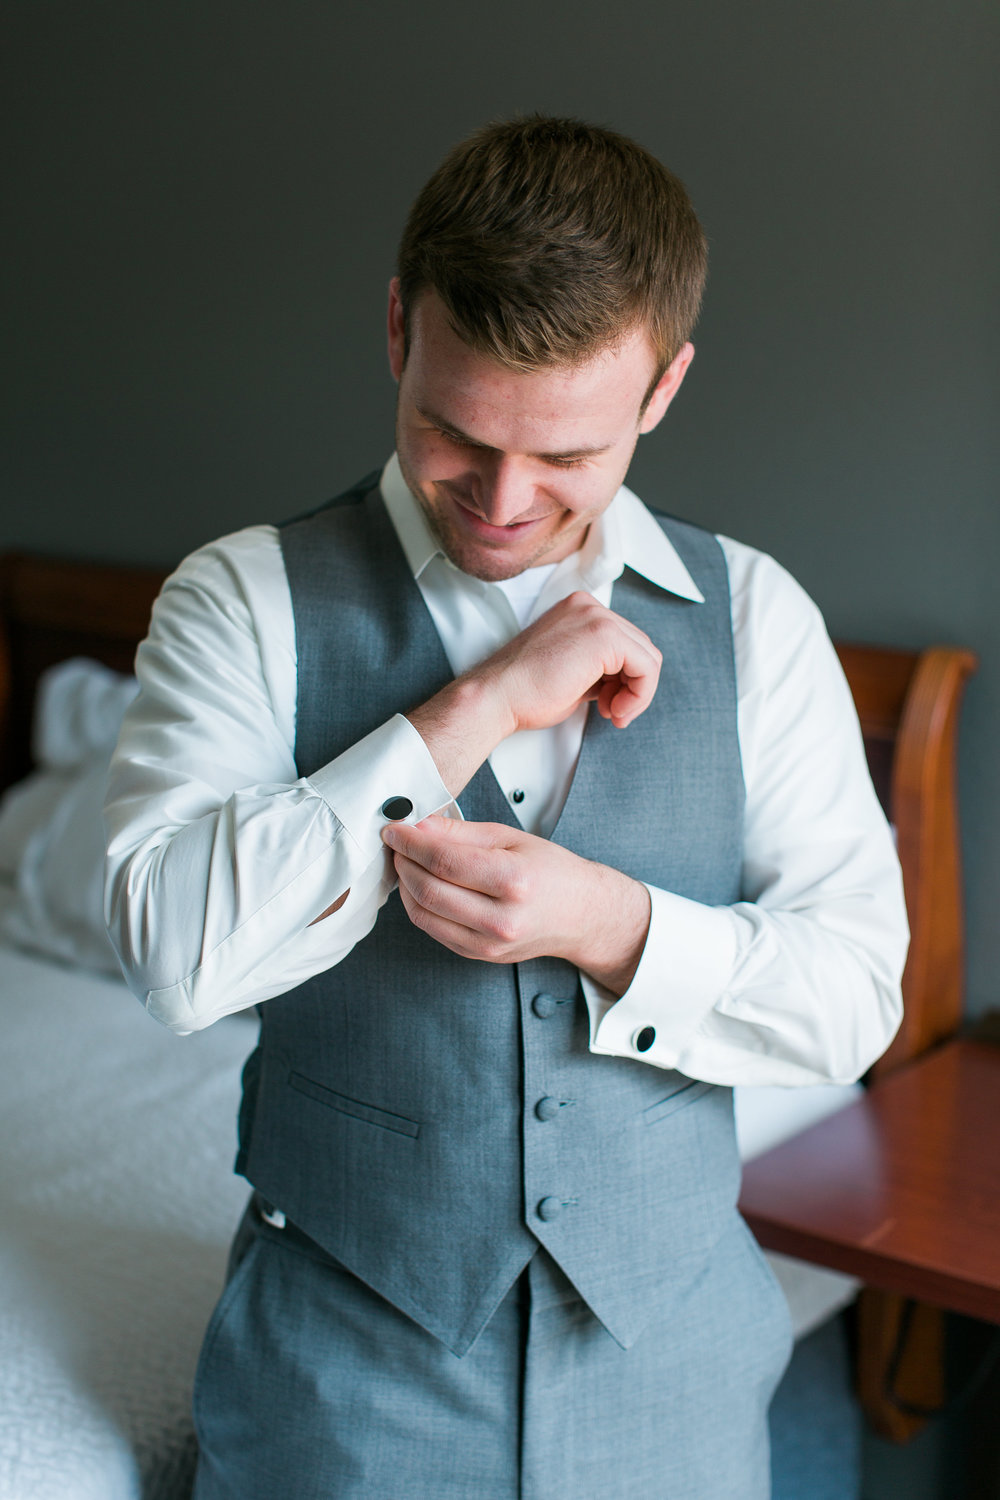 Groom getting ready for wedding day with cufflinks Minneapolis Event Centers wedding